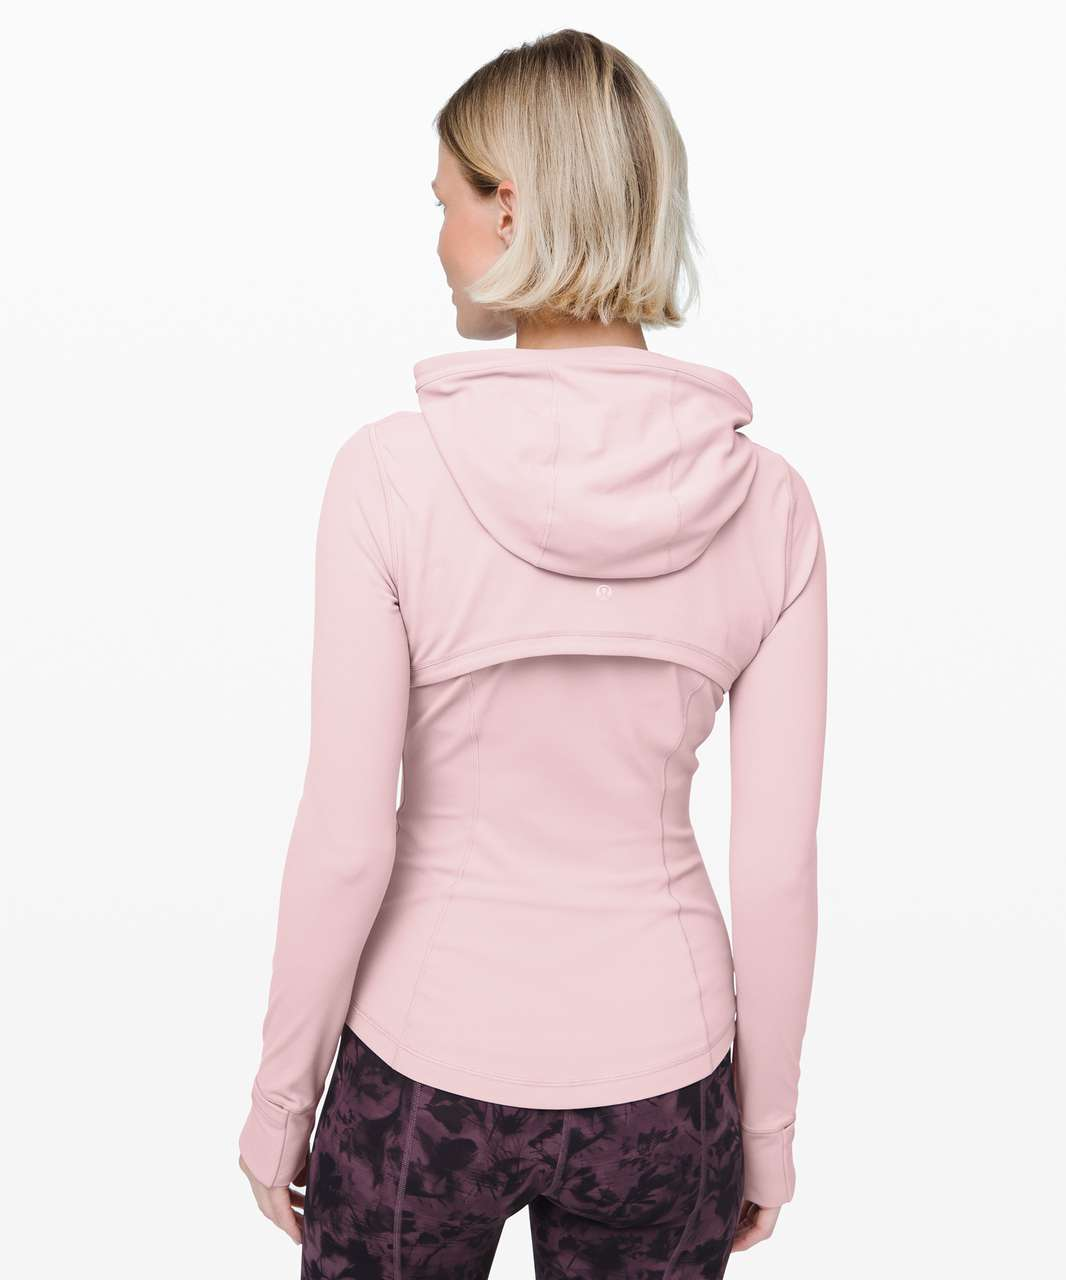 Lululemon Hooded Define Jacket *Nulu - Smoky Blush